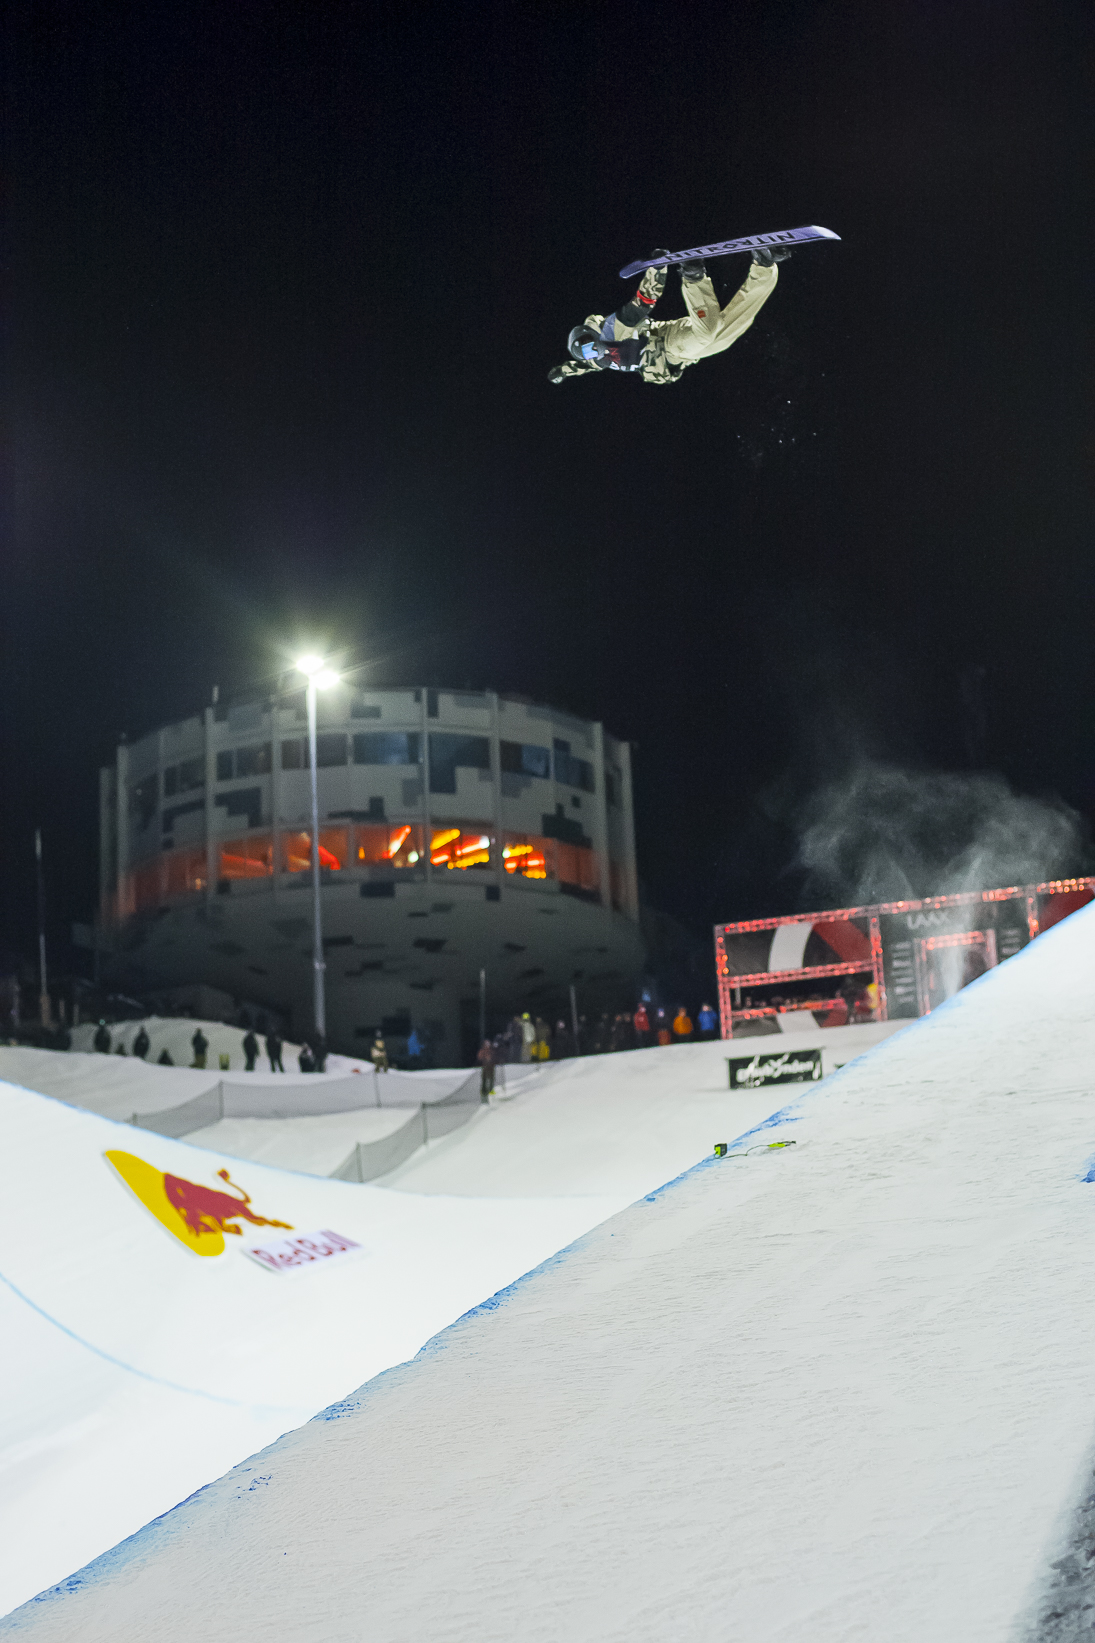 Andre Höflich - Switch Backside Air - Laax Open 2021